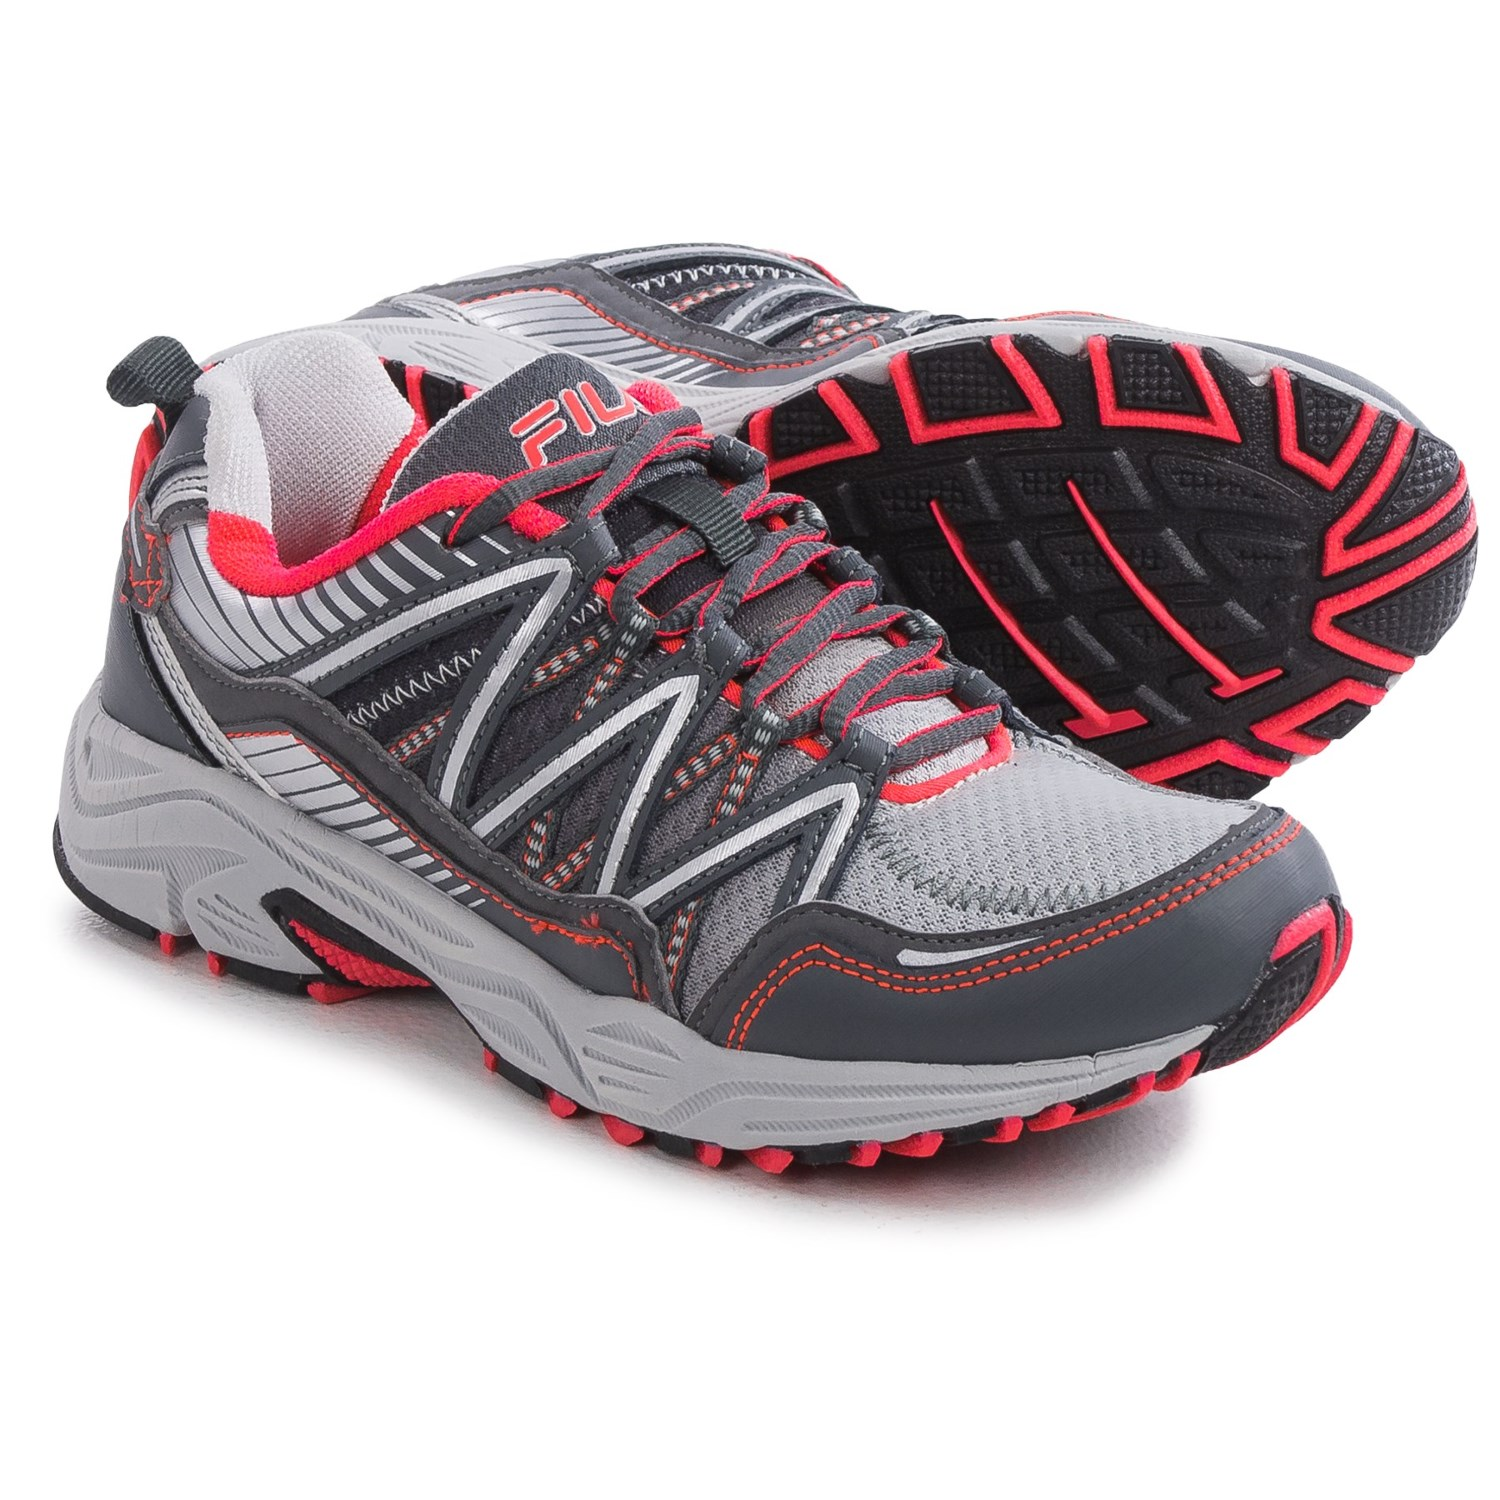 Fila Headway 6 Trail Running Shoes For Women Save 58